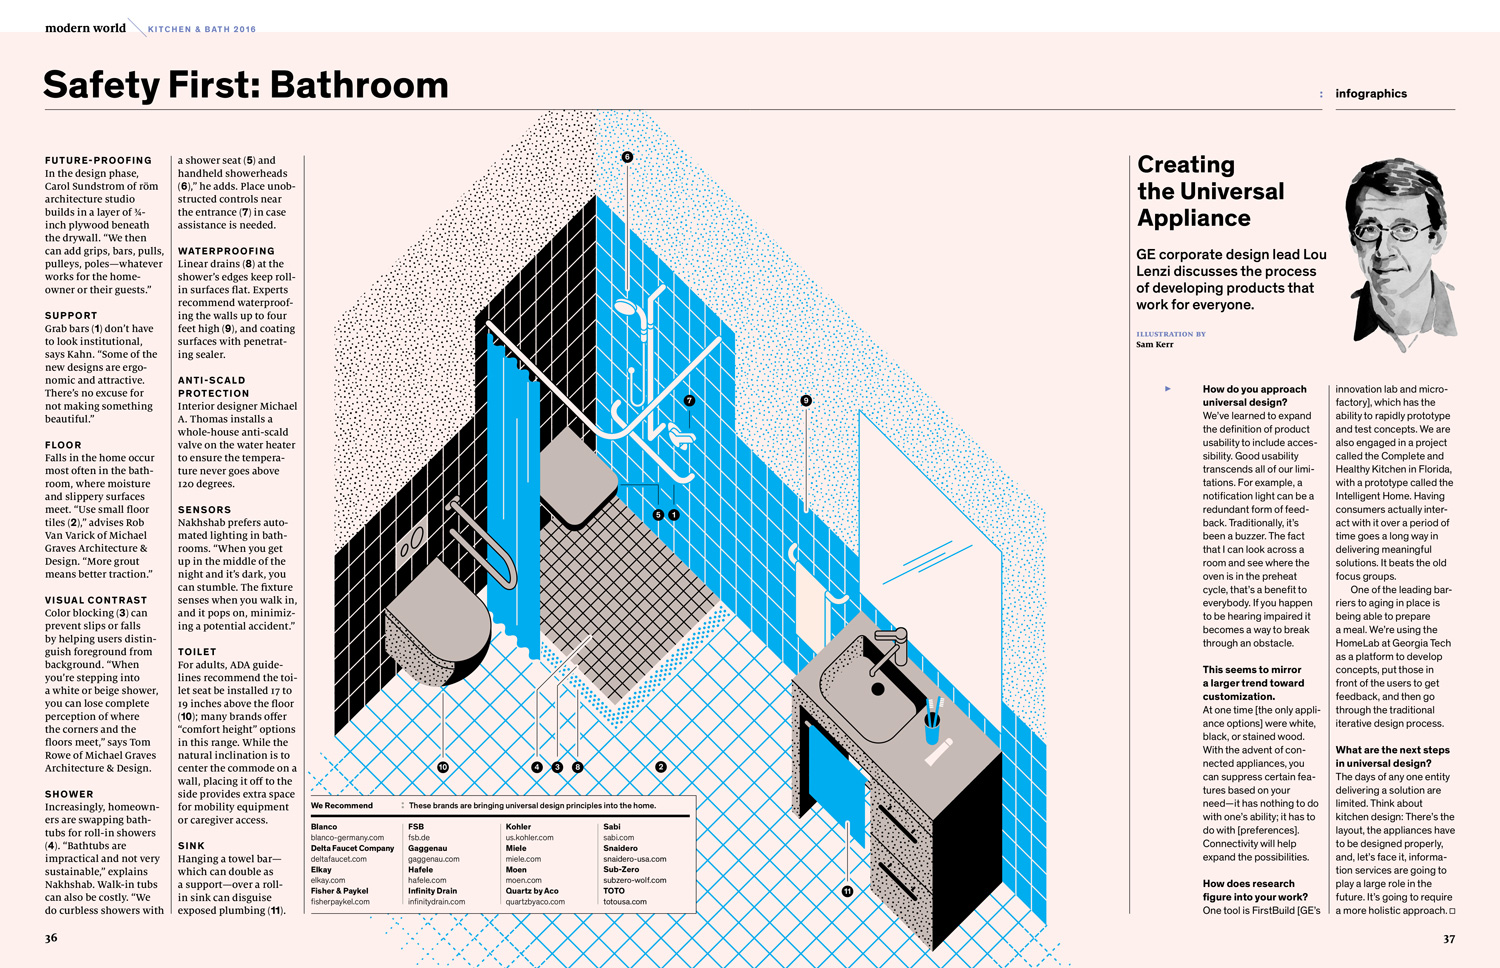 Bathroom interior Infographic for Dwell magazine